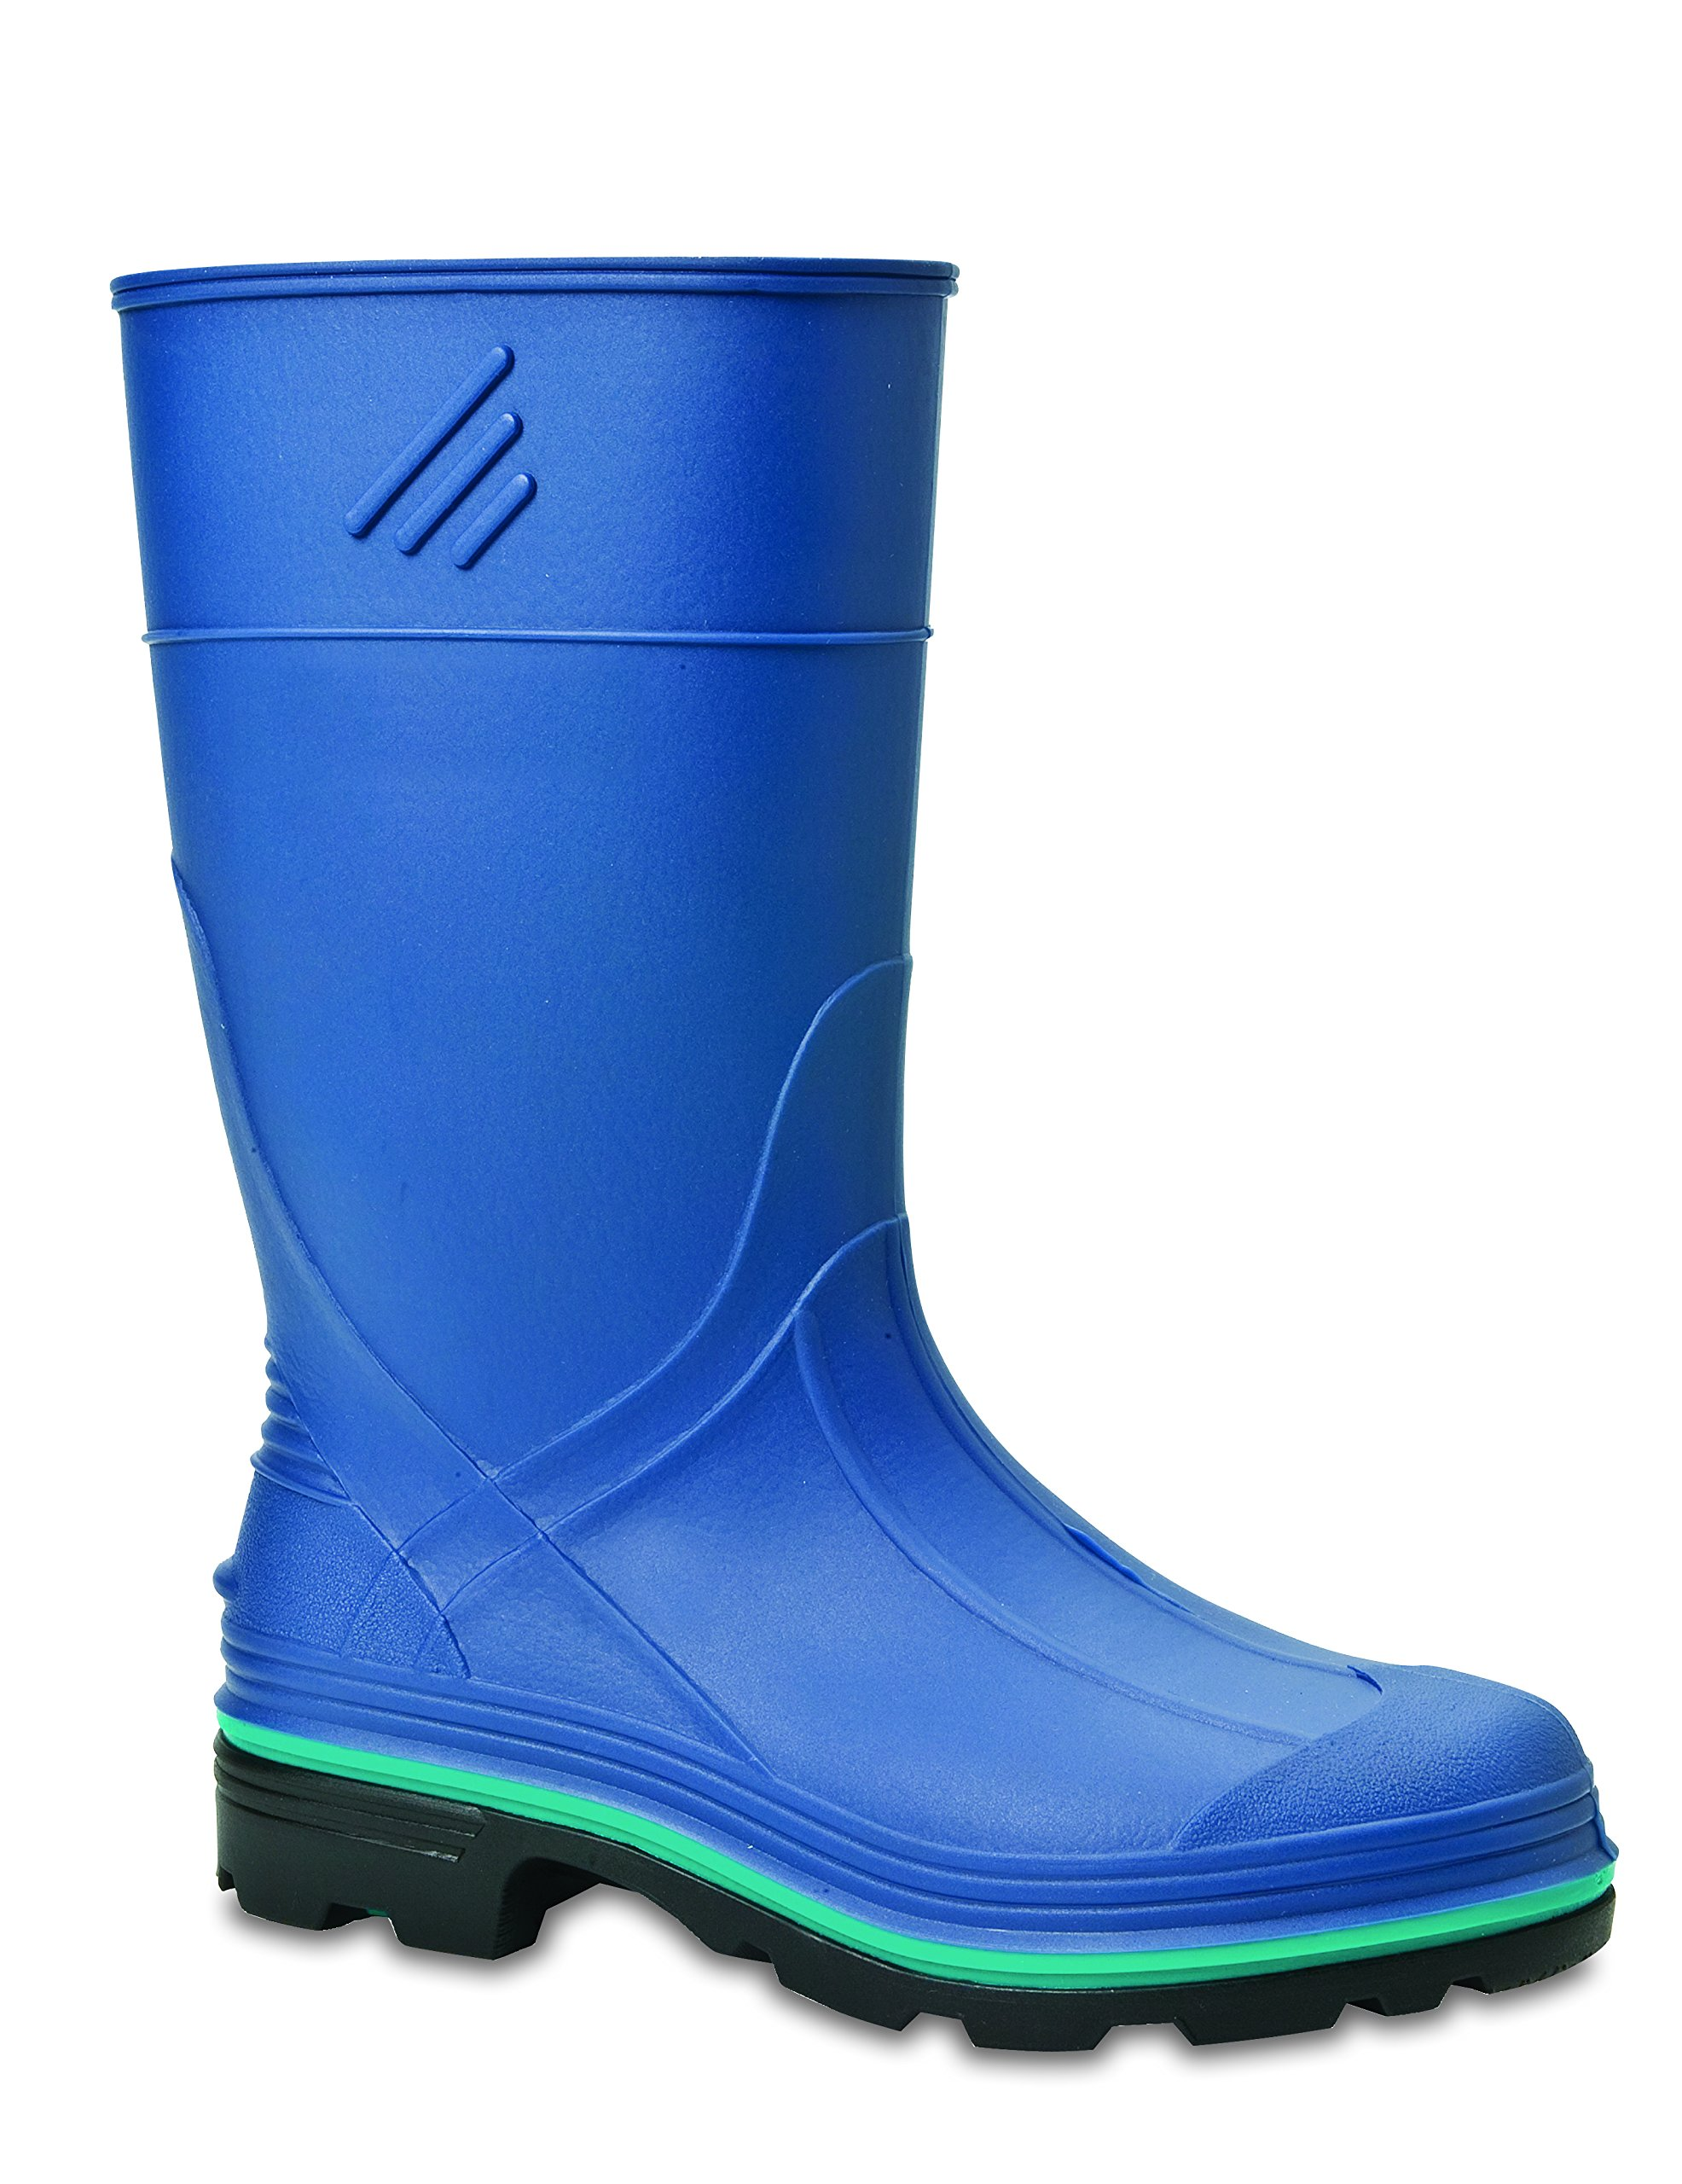 Ranger Splash Series Young Adults' Rain Boots, Blue (76006)